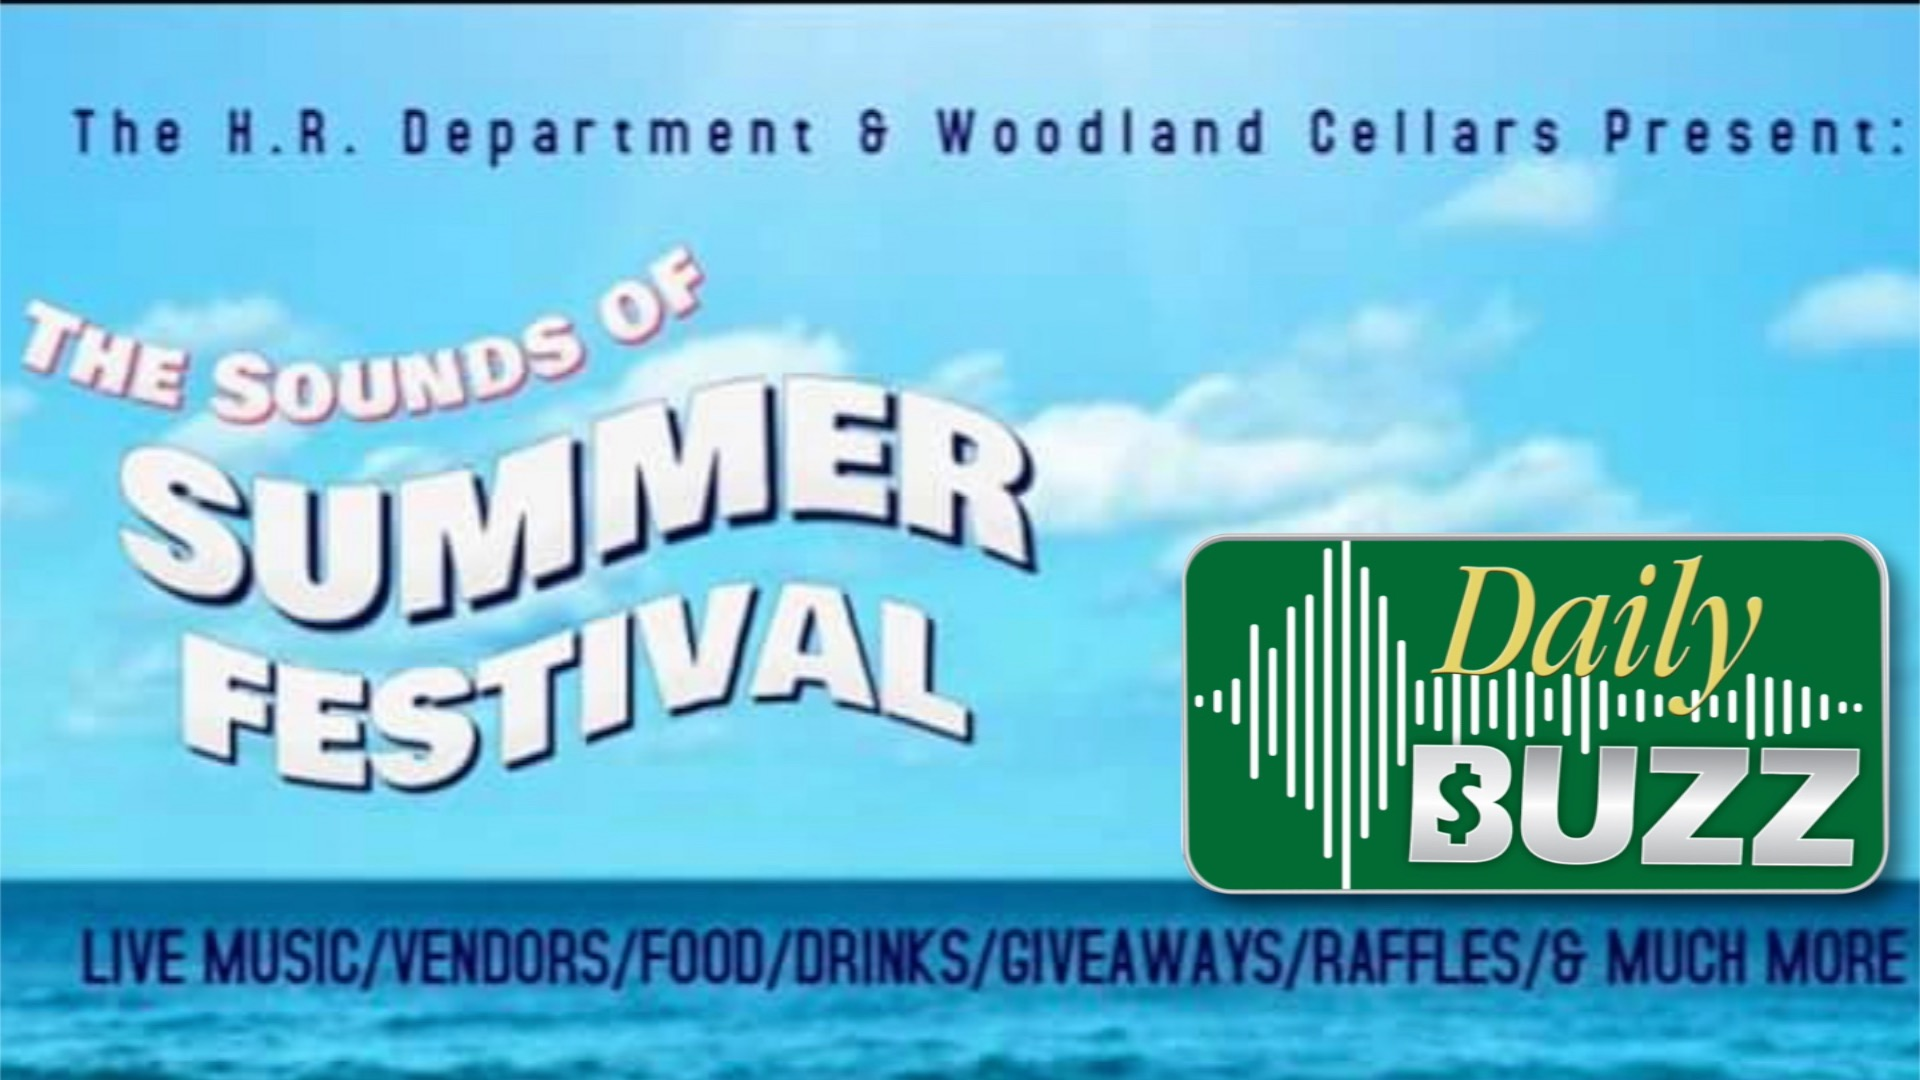 Sounds of Summer in Hubbard